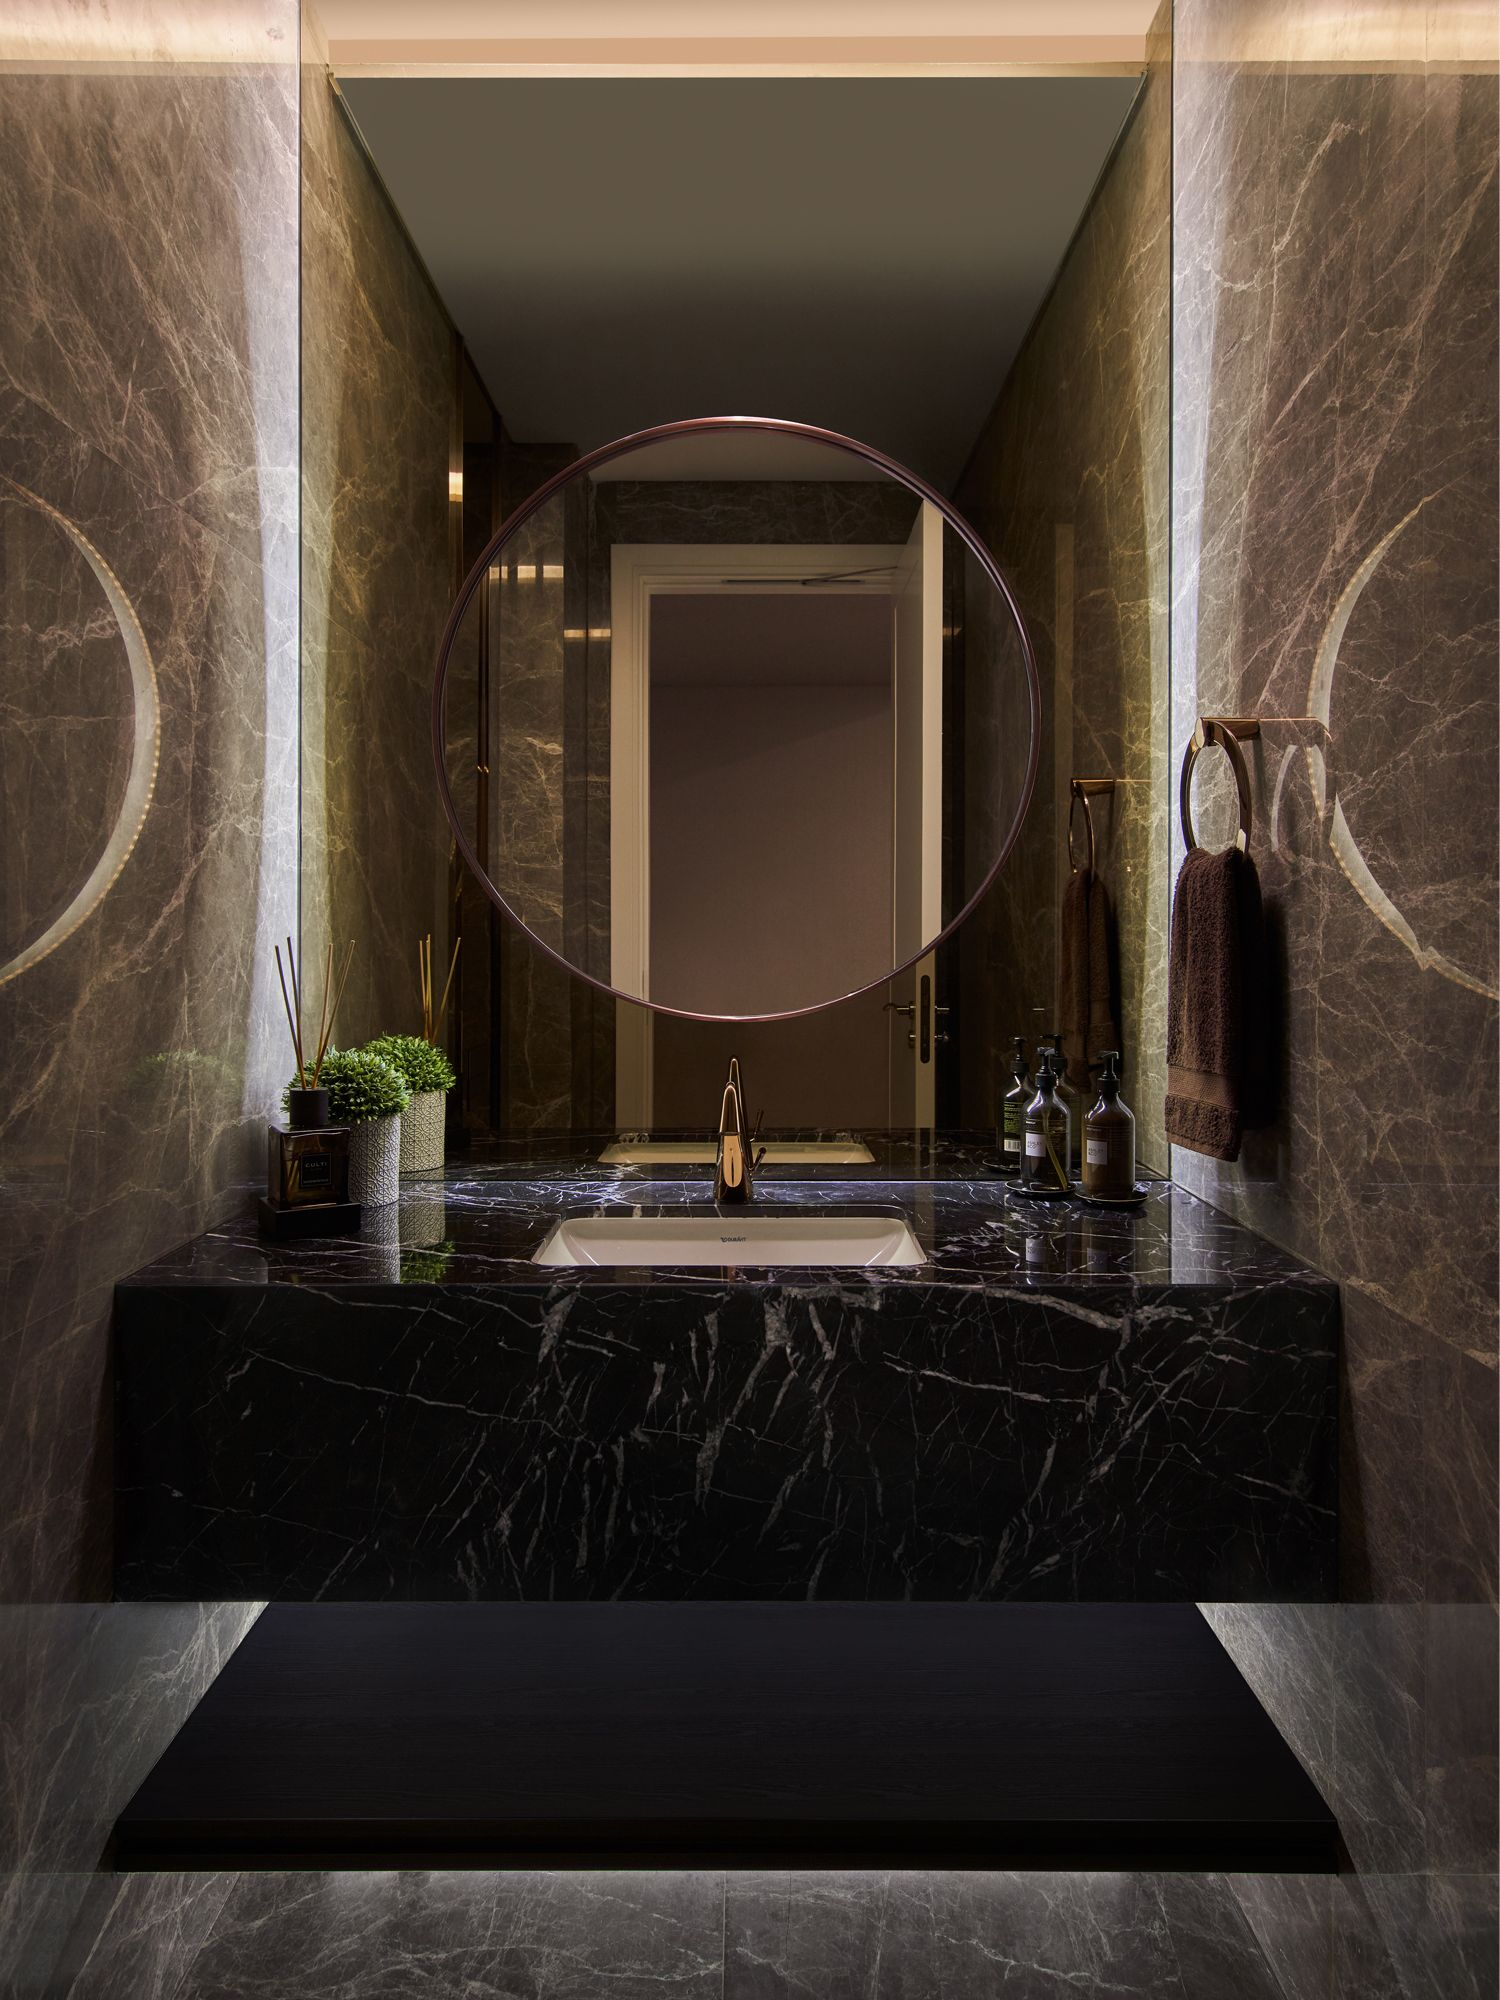 The powder room features a solid block of black marble for the basin and mirrored walls that visually expand its dimensions